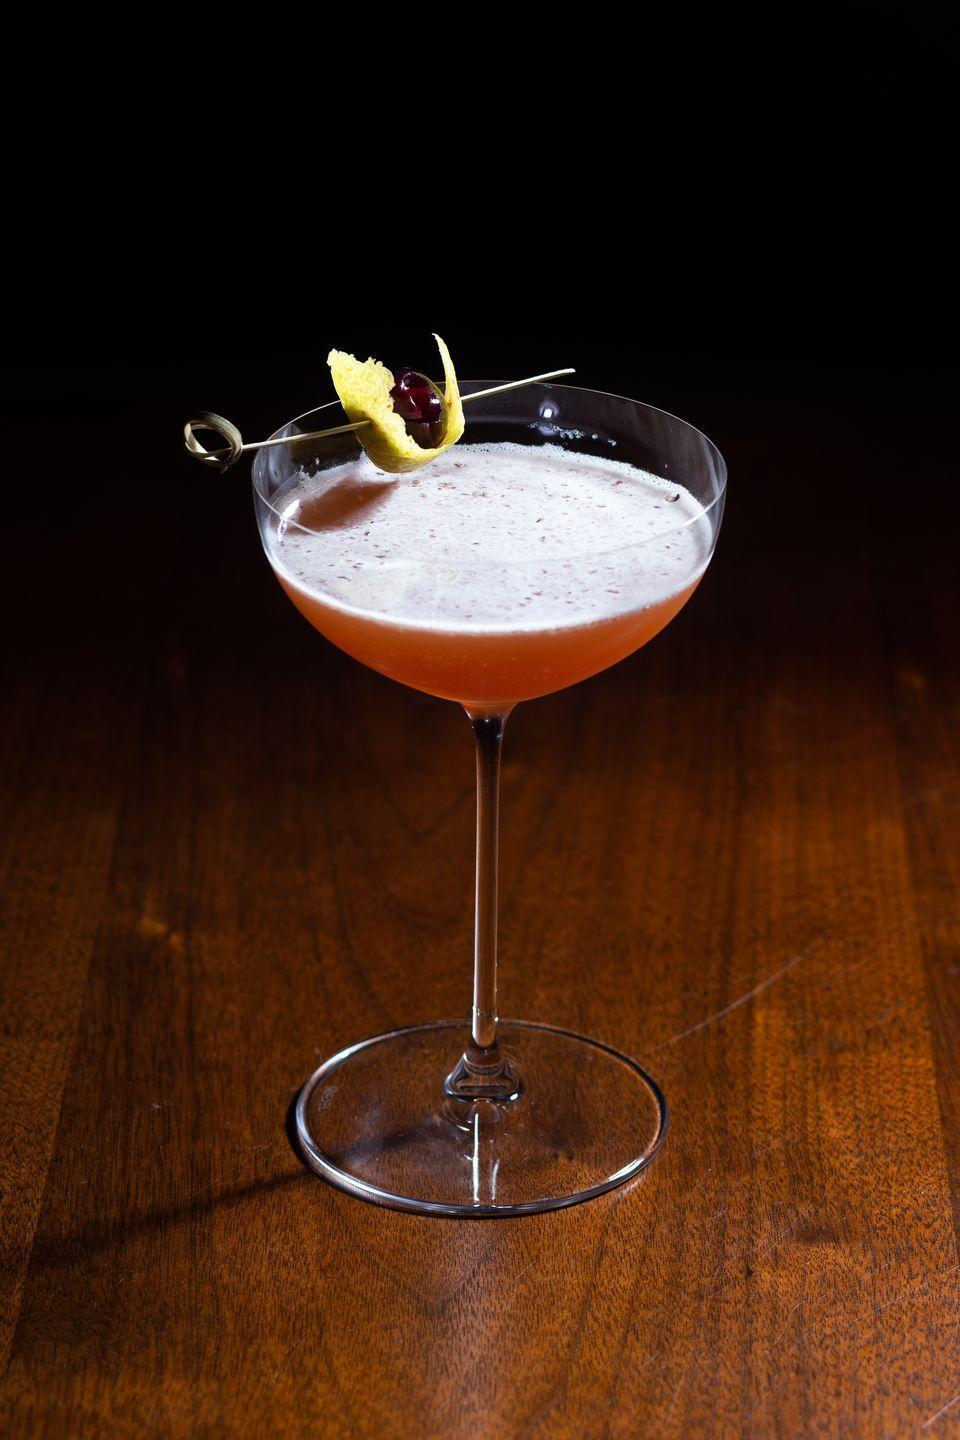 "<p>This namesake cocktail was written in tandem with VERANDA's November 2020 book club pick: <em><a href=""https://www.veranda.com/luxury-lifestyle/books-to-read/a34495803/nov-book-club-john-birdsall-man-who-ate-too-much/"" rel=""nofollow noopener"" target=""_blank"" data-ylk=""slk:The Man Who Ate Too Much"" class=""link rapid-noclick-resp"">The Man Who Ate Too Much</a></em> by John Birdsall, that chronicles the life of world-famous epicurean James Beard. And it just so happens to be a delightful choice of drink during those cozy winter months, thanks to some scotch and cranberry.</p><p>Get the recipe, <a href=""https://www.veranda.com/food-recipes/a34748921/beard-s-sour-cocktail-recipe/"" rel=""nofollow noopener"" target=""_blank"" data-ylk=""slk:here"" class=""link rapid-noclick-resp"">here</a>.</p>"